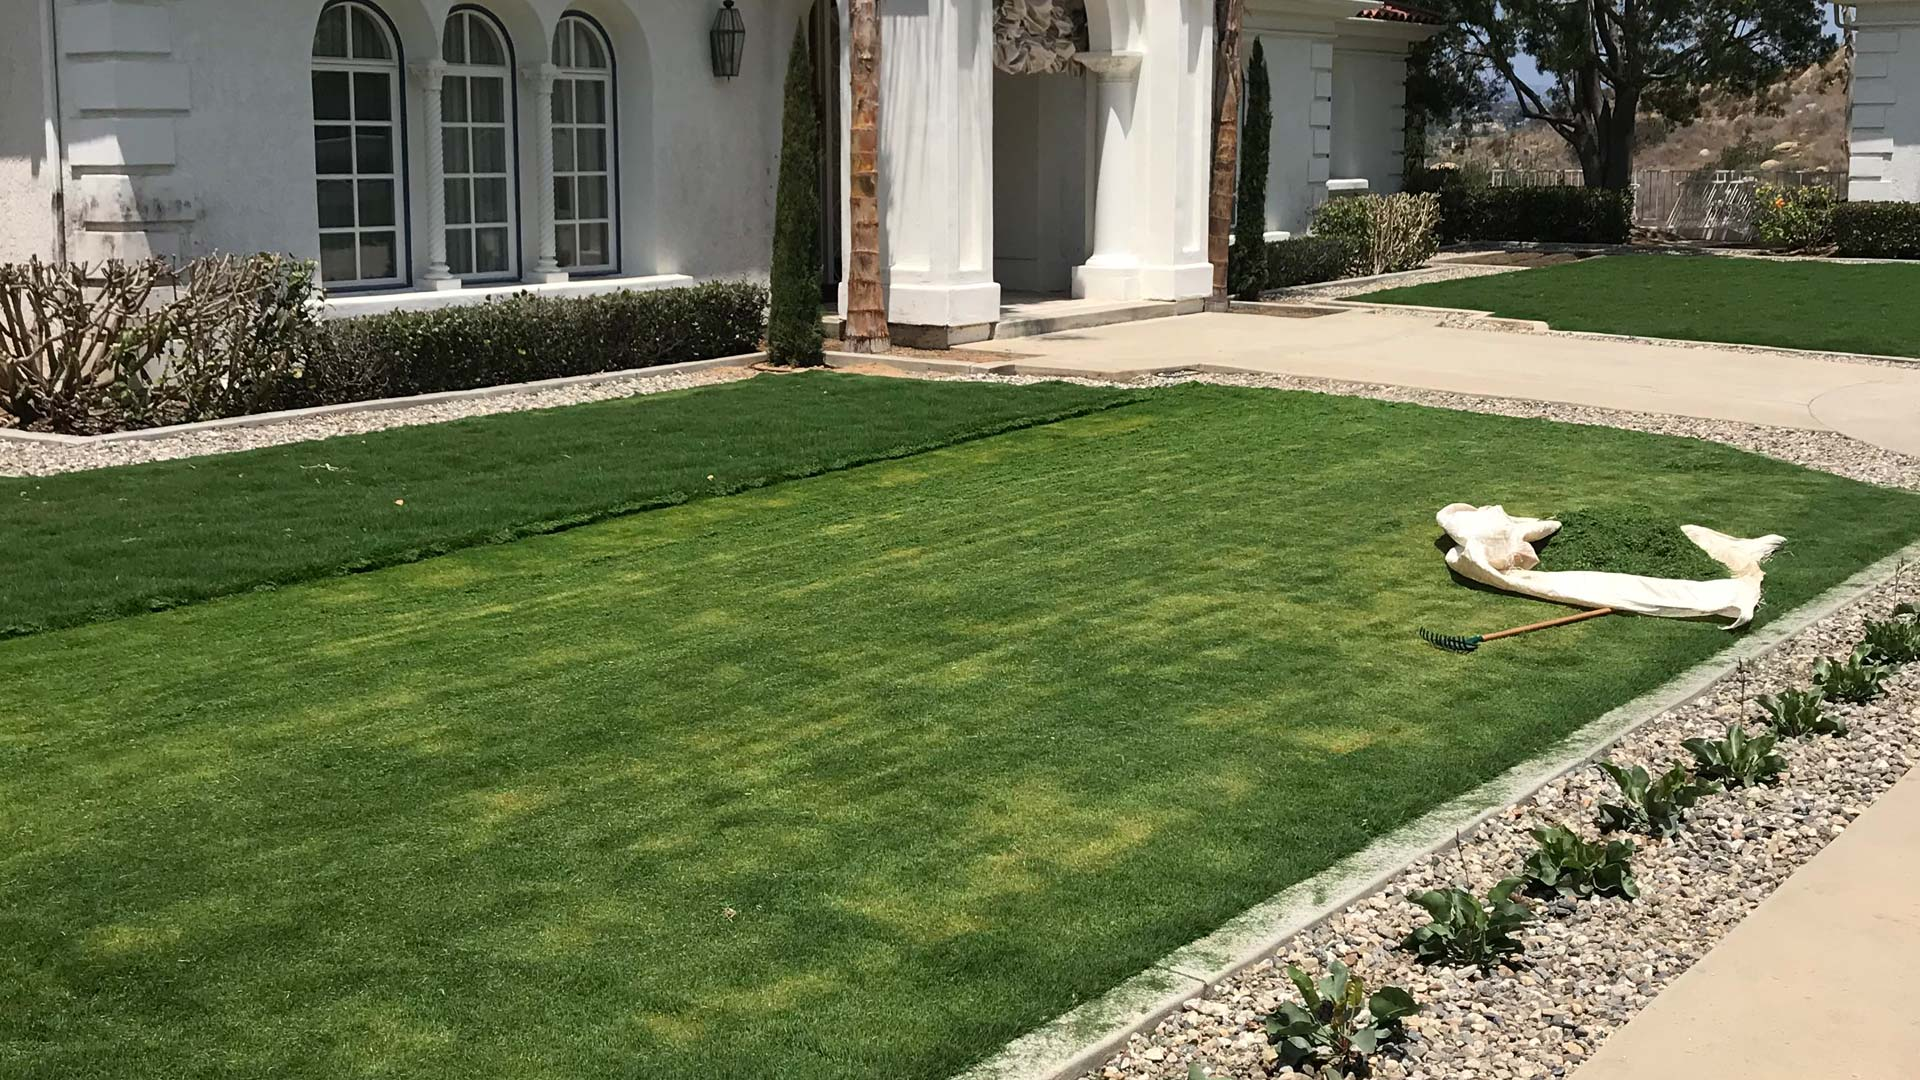 Our team mowing the front lawn of a home in Carlsbad, CA.